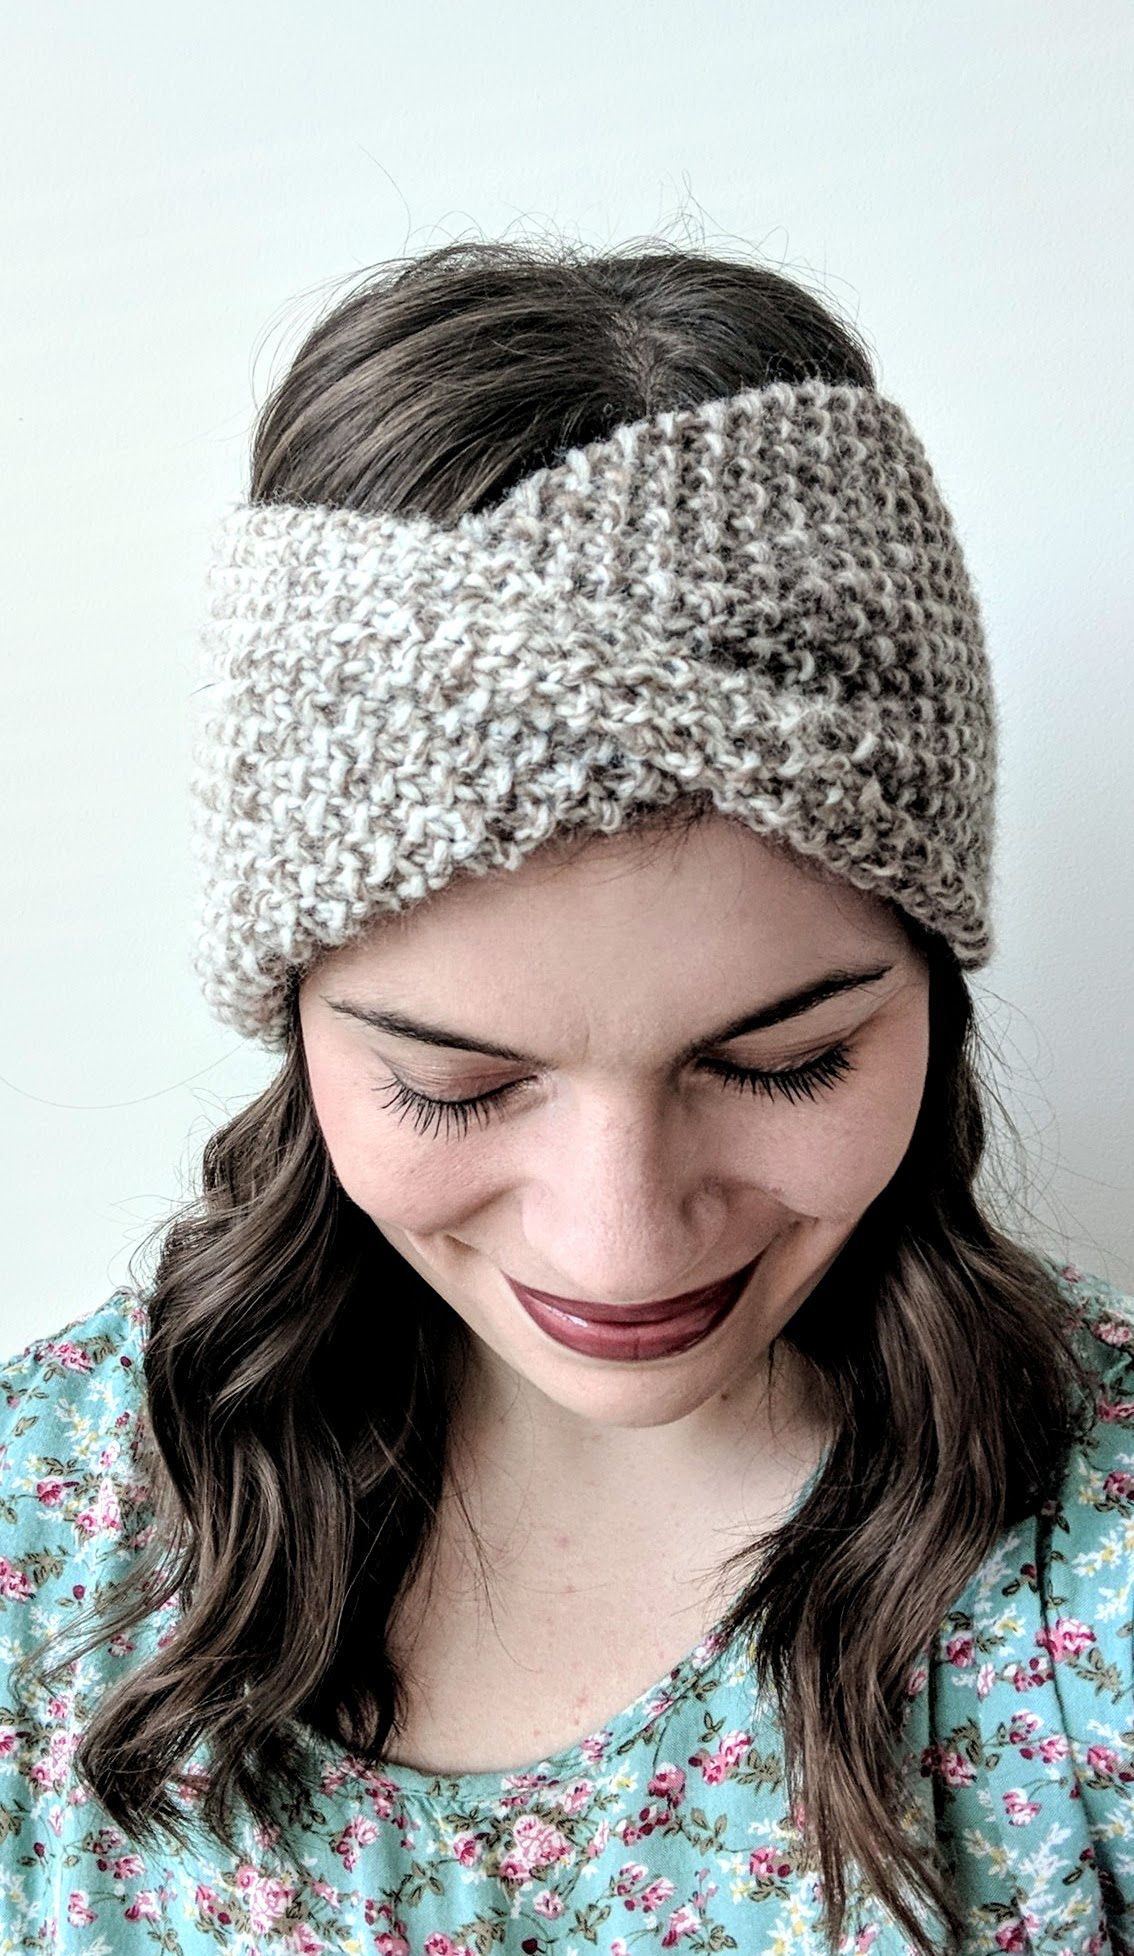 Free Knitting Pattern: Mobius Headband | Knit headband ...